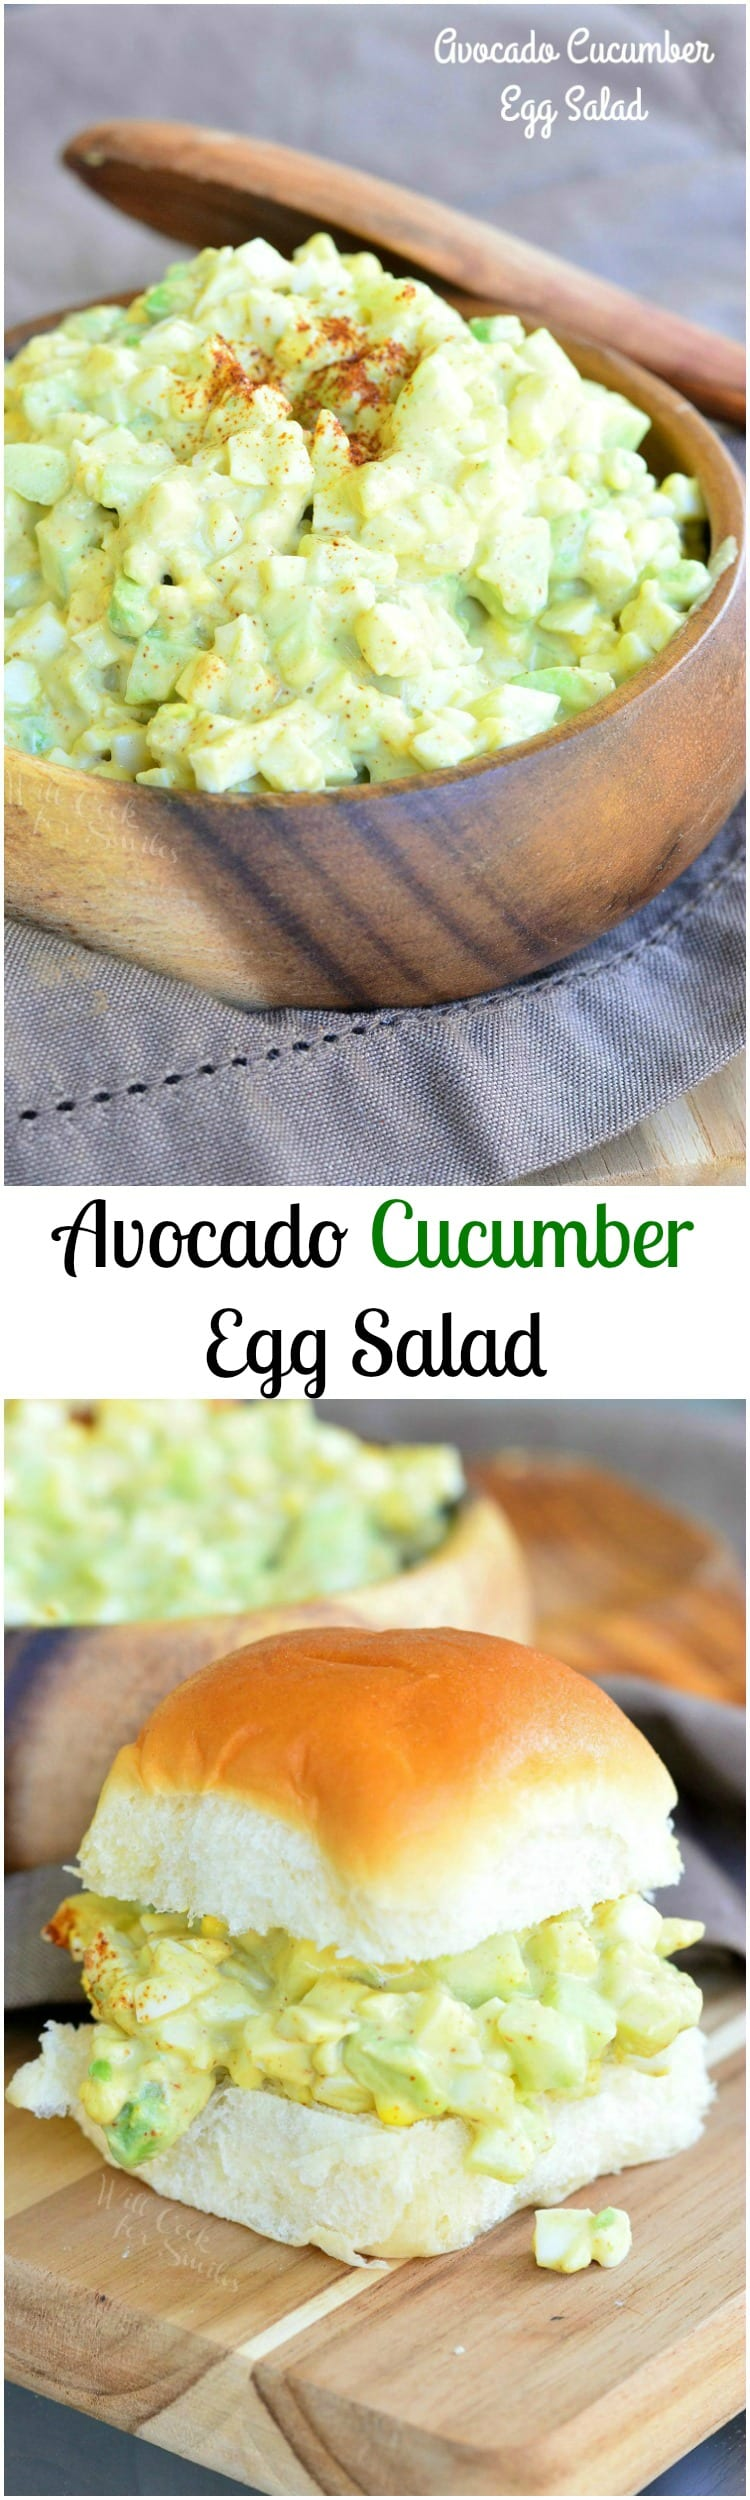 Avocado Cucumber Egg Salad. Creaminess of avocado, crunch of a cucumber, and some paprika for flavor, all comes together in one FANTASTIC egg salad. SO delicious! #eggs